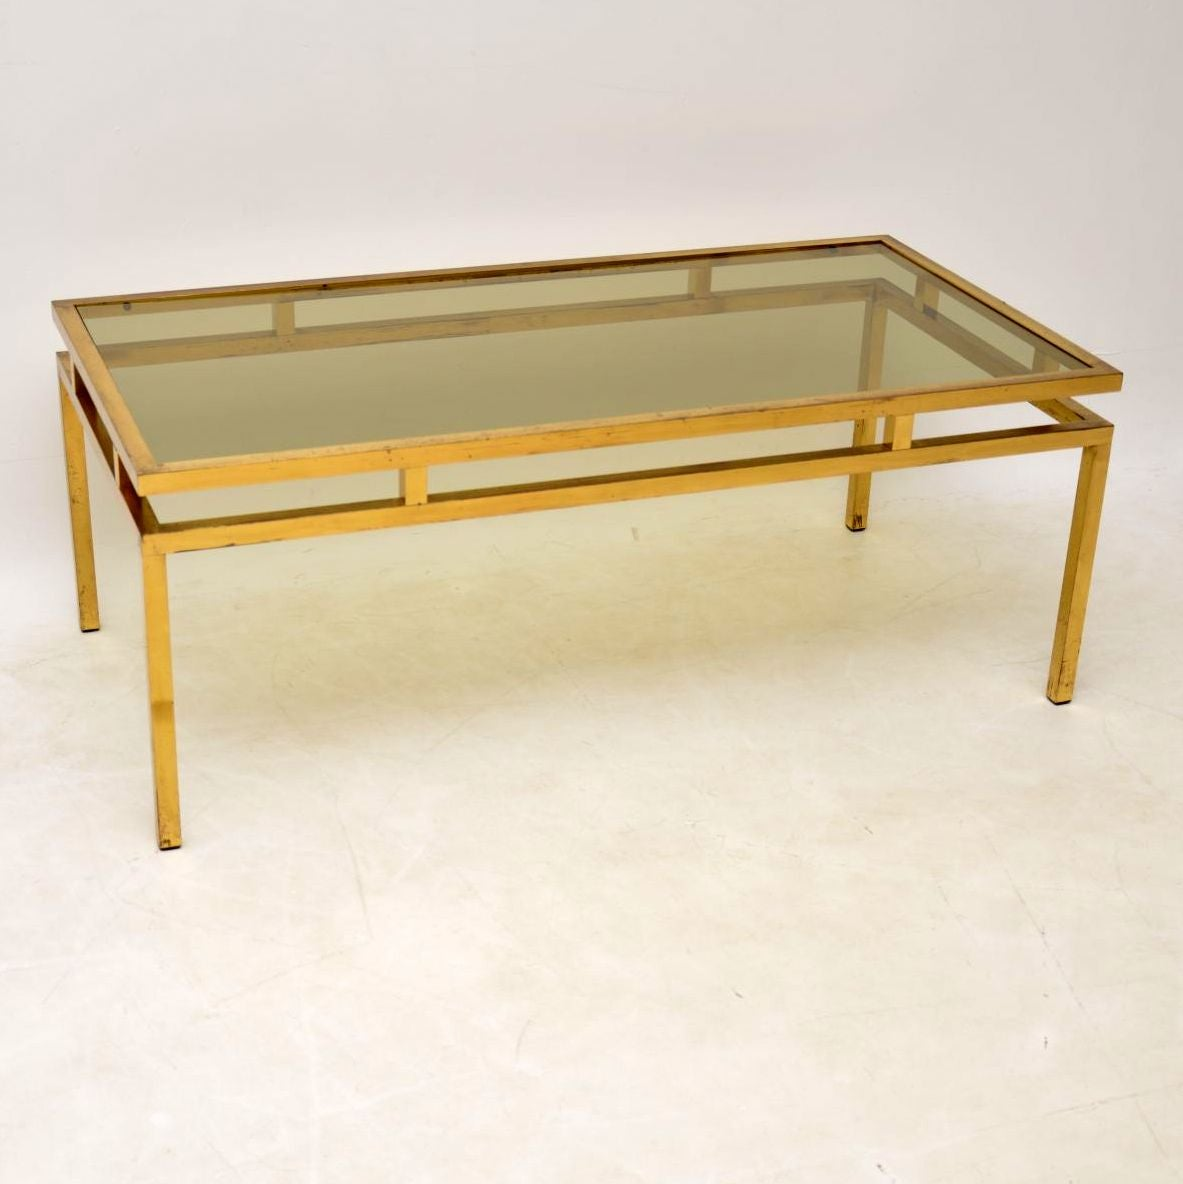 Bon 1960s Vintage French Brass And Glass Coffee Table At 1stdibs